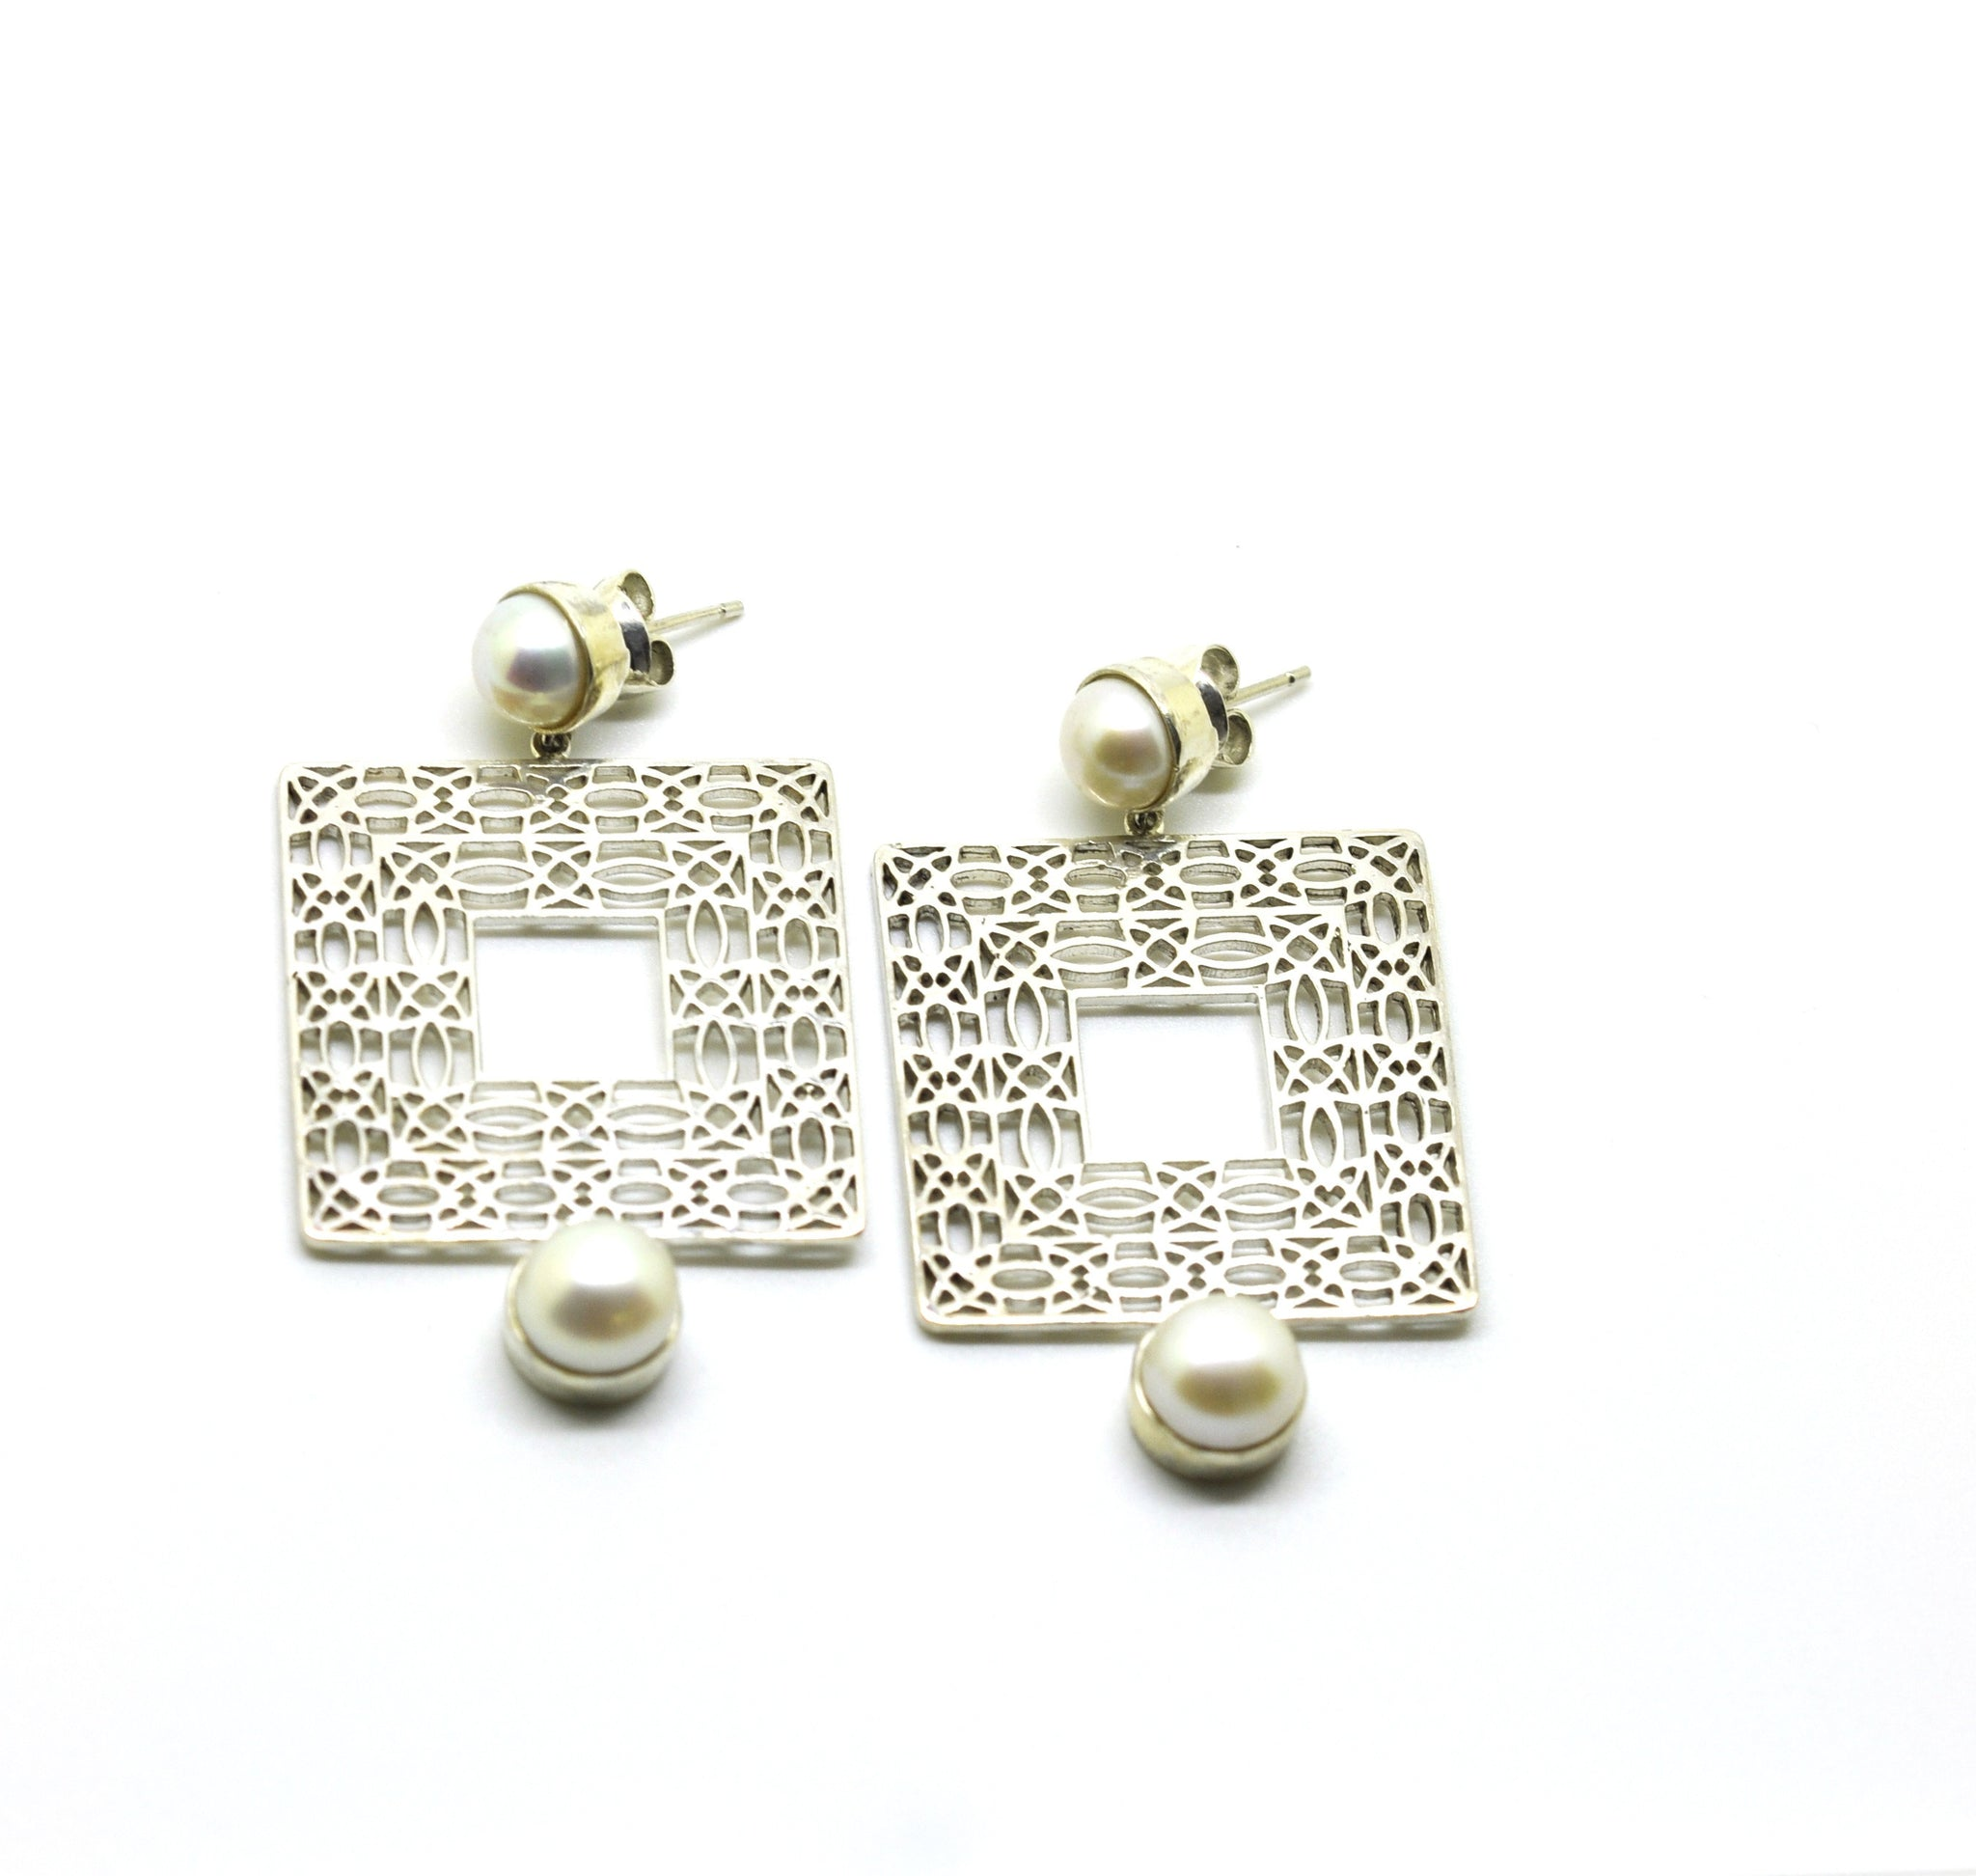 SOLD - CLEARANCE SALE Filigree - Square with pearls